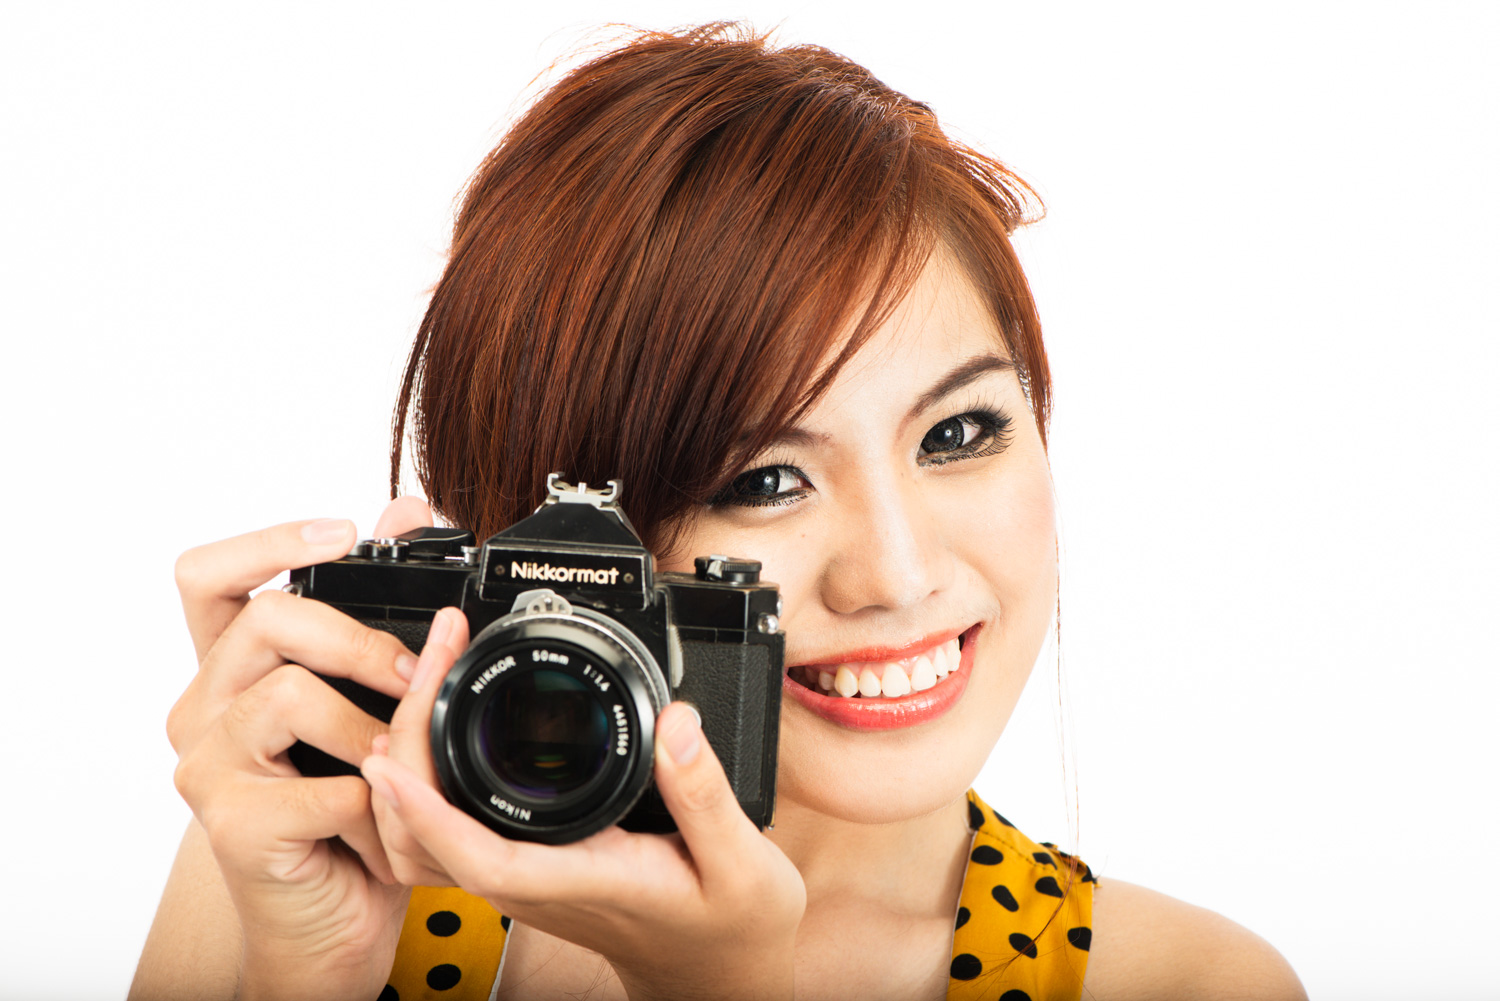 Royalty Free Editorial Stock Photography - What is it? Woman with a SLR Film Camera